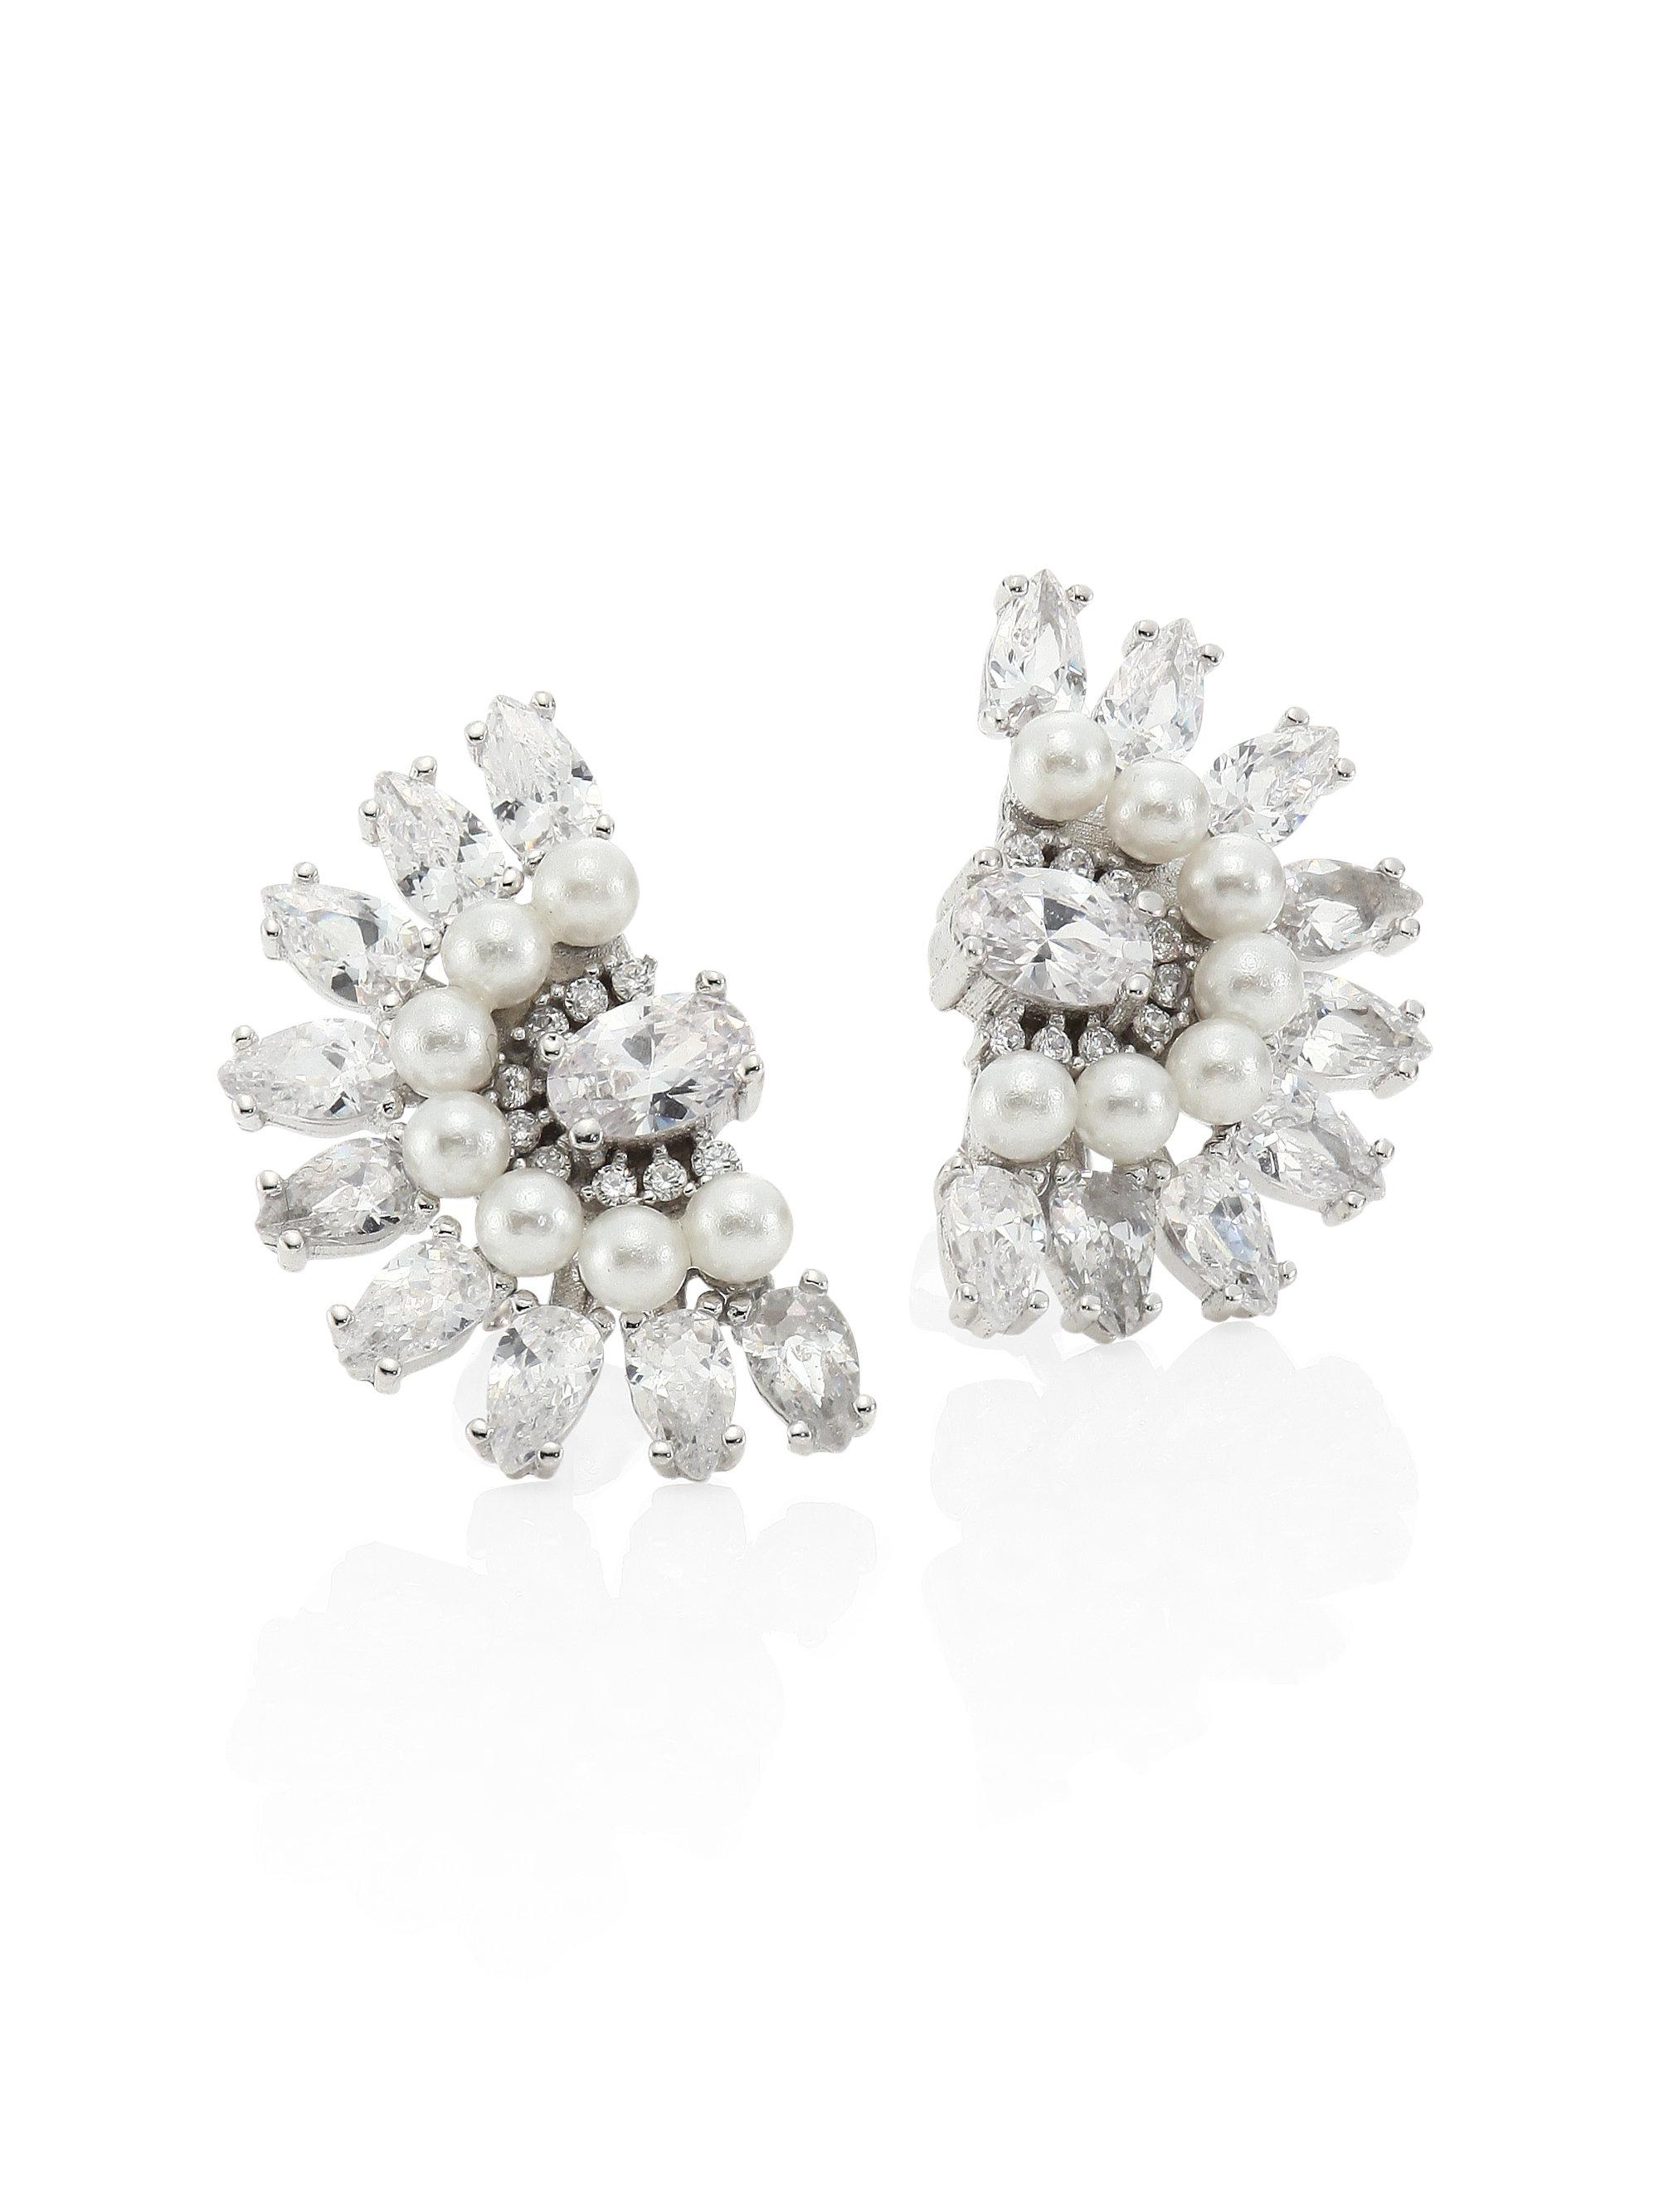 Fallon Monarch Micro Baguette Stud Earrings bQFO4svU